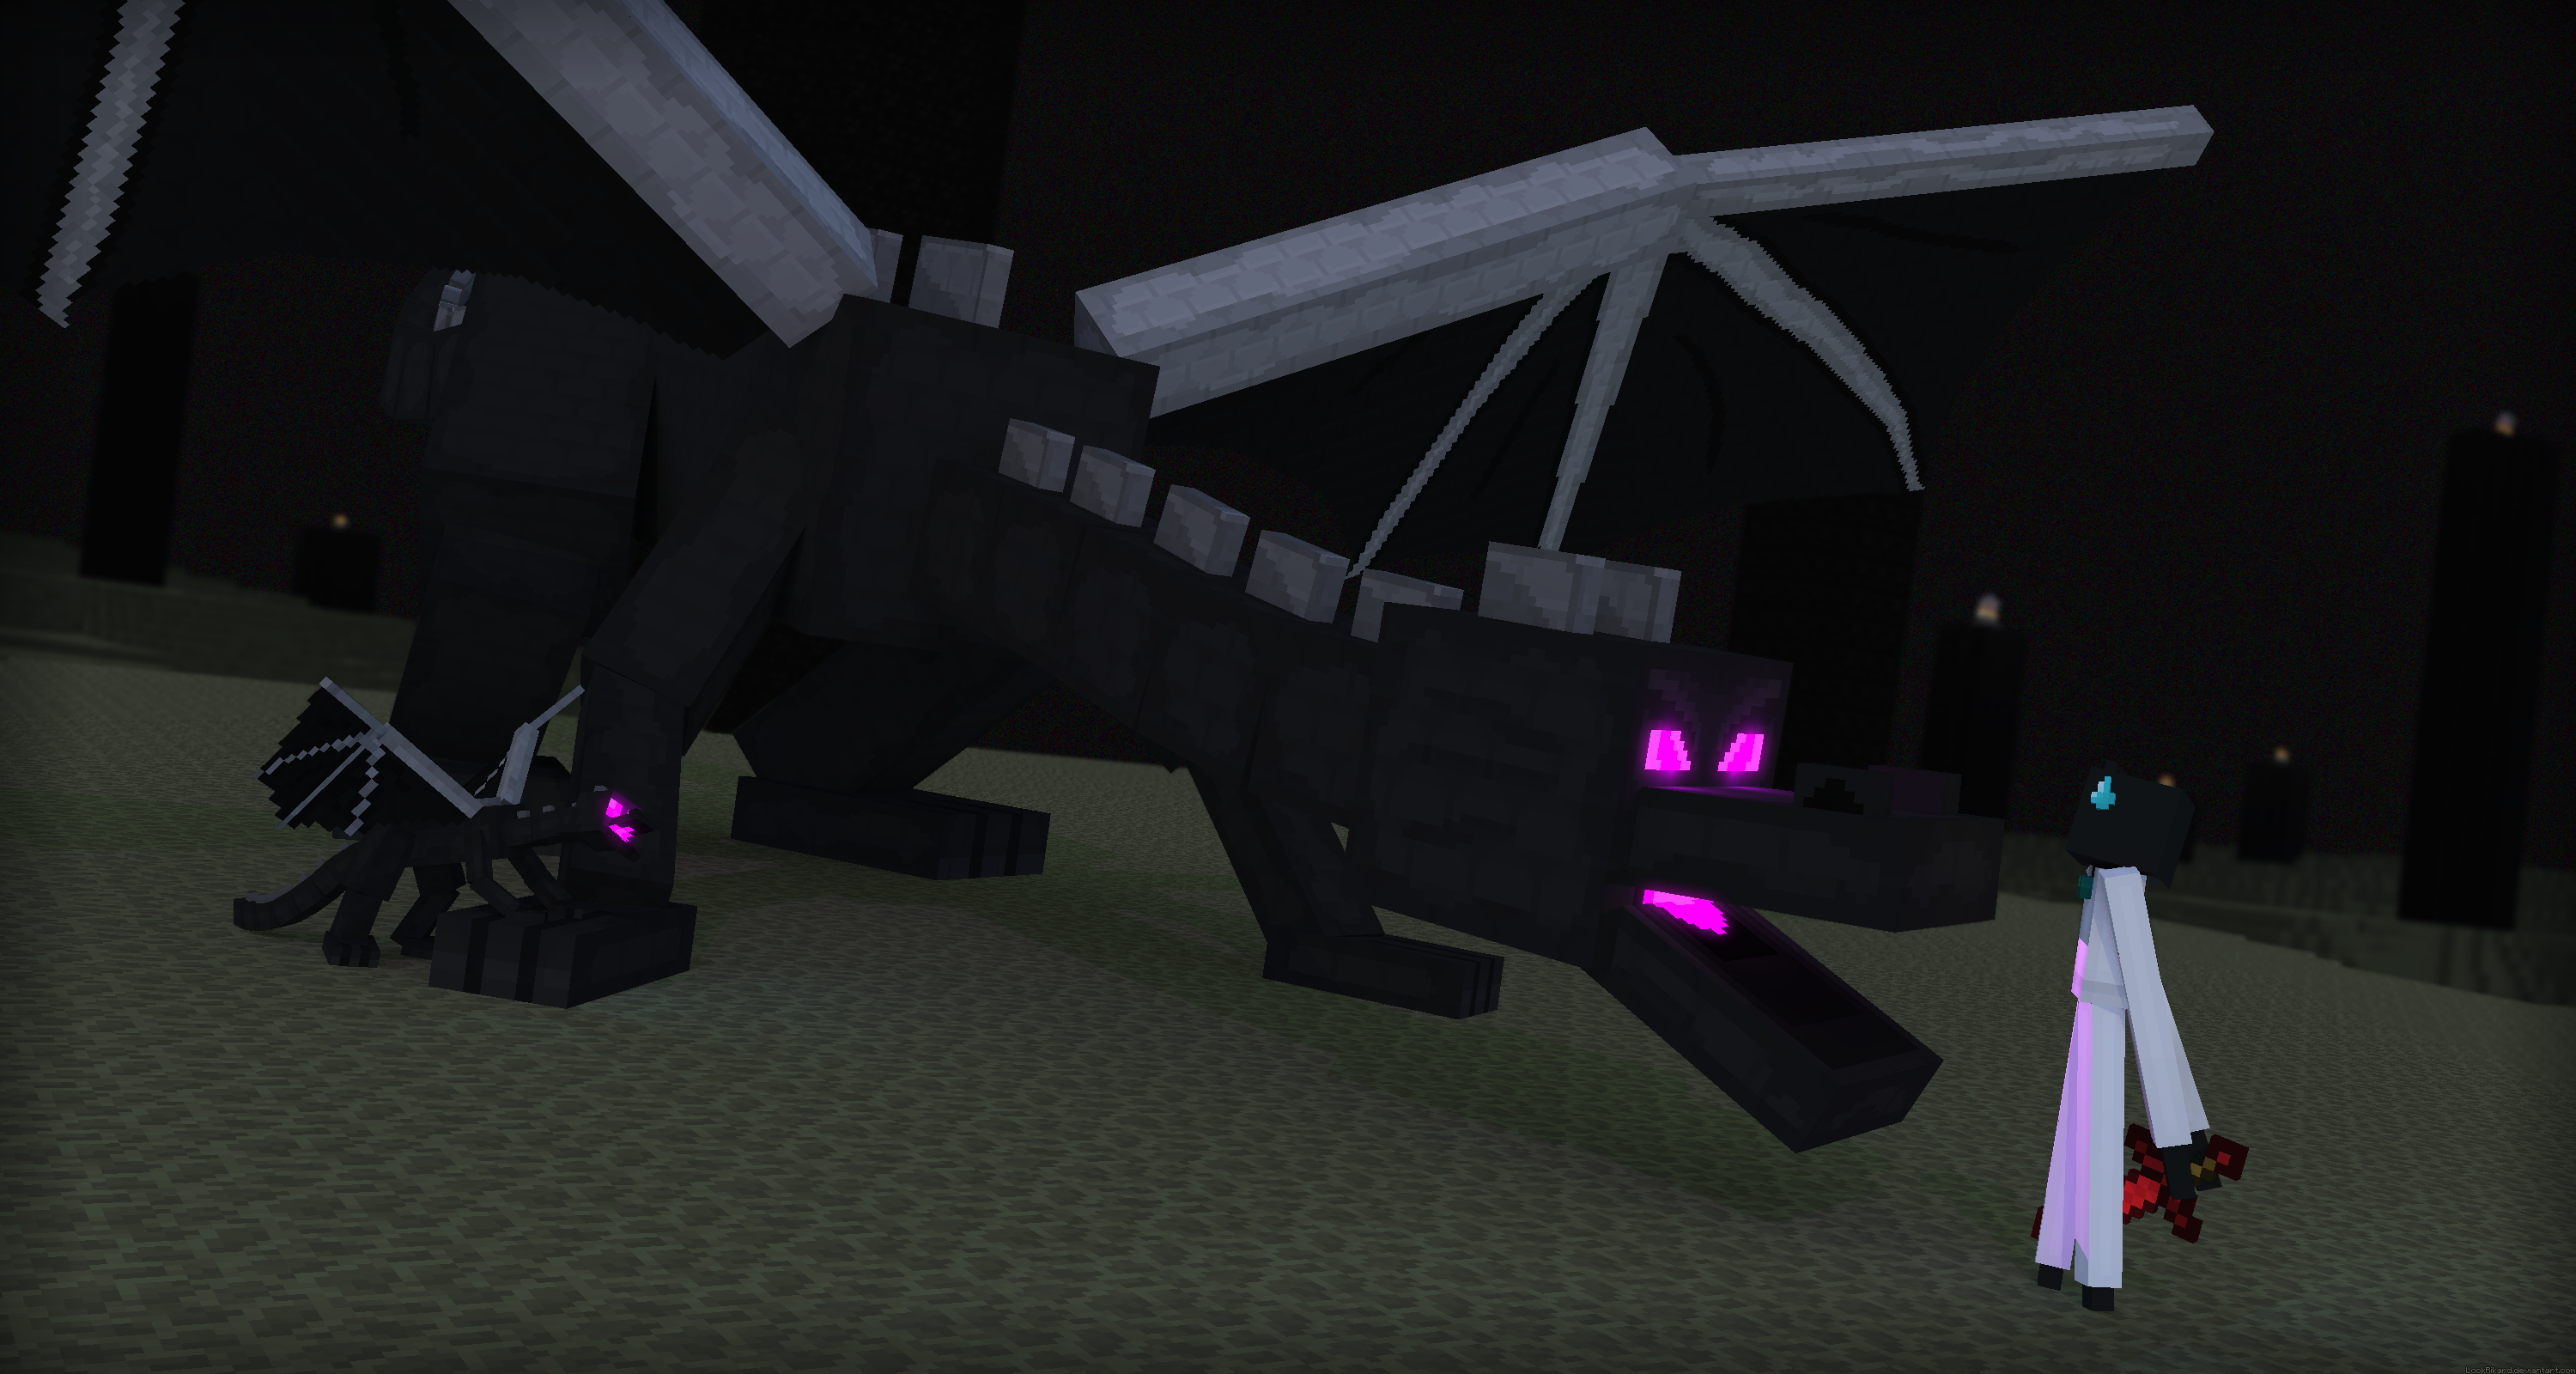 Spell Minecraft Before Someone Posts A EnderDragon